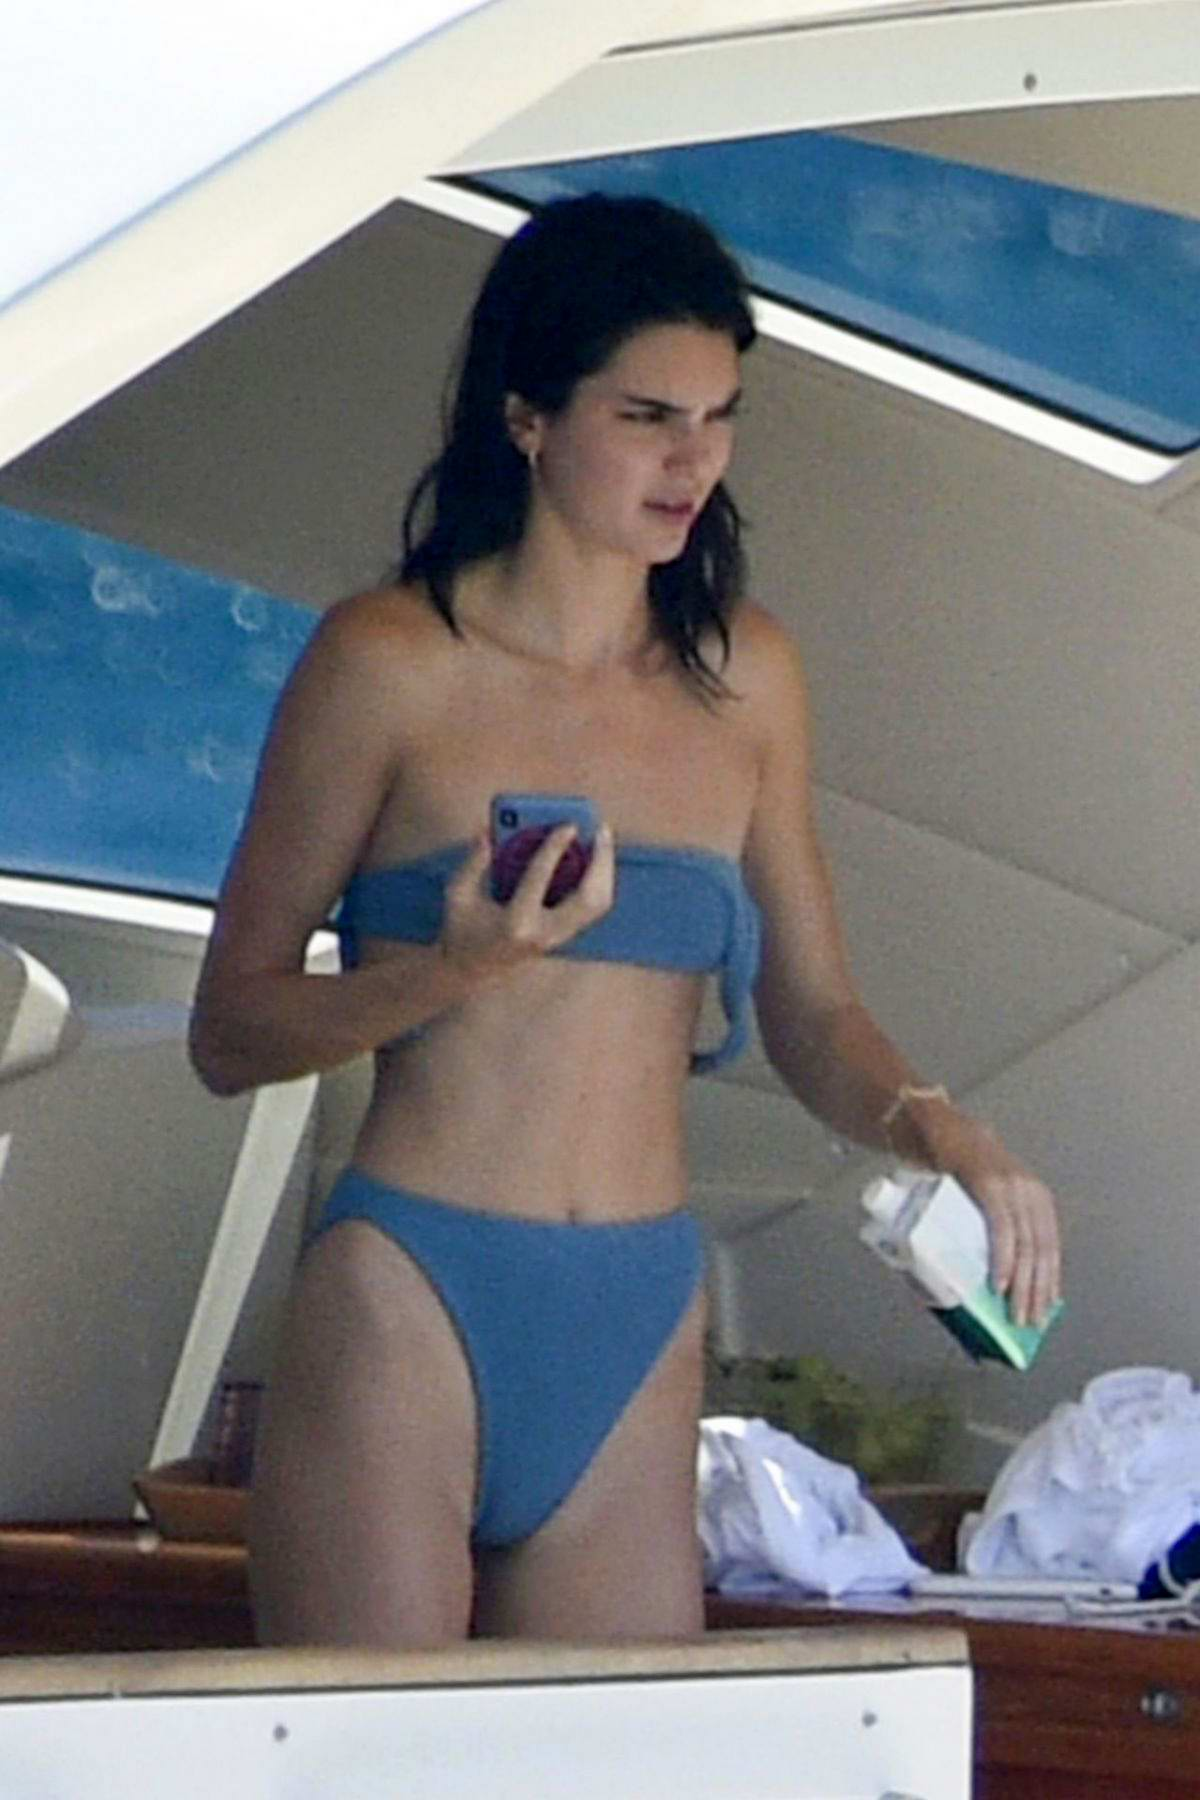 Kendall Jenner sports a blue bikini while relaxing on a yacht in Corsica, France